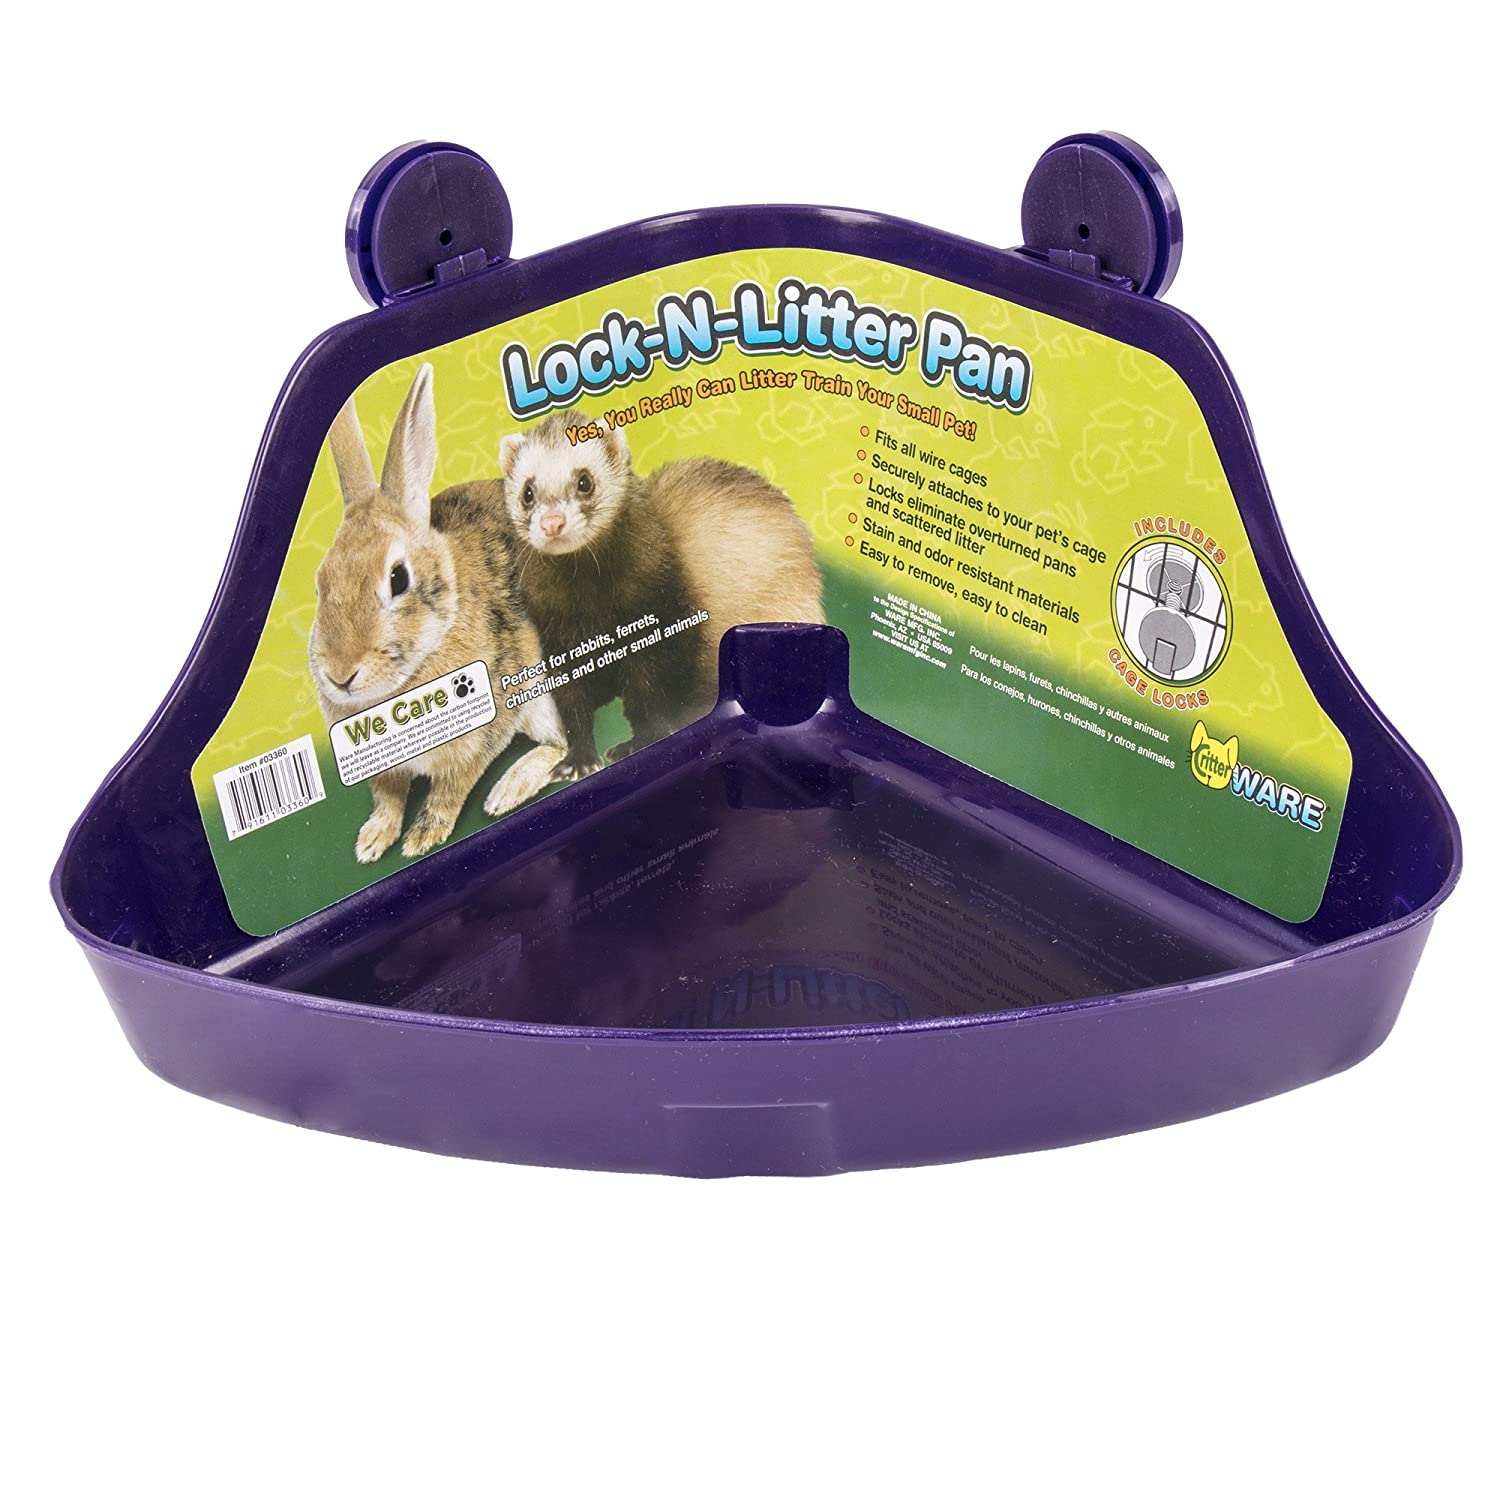 Ware Manufacturing Plastic Lock-N-Litter Pan for Small Pets